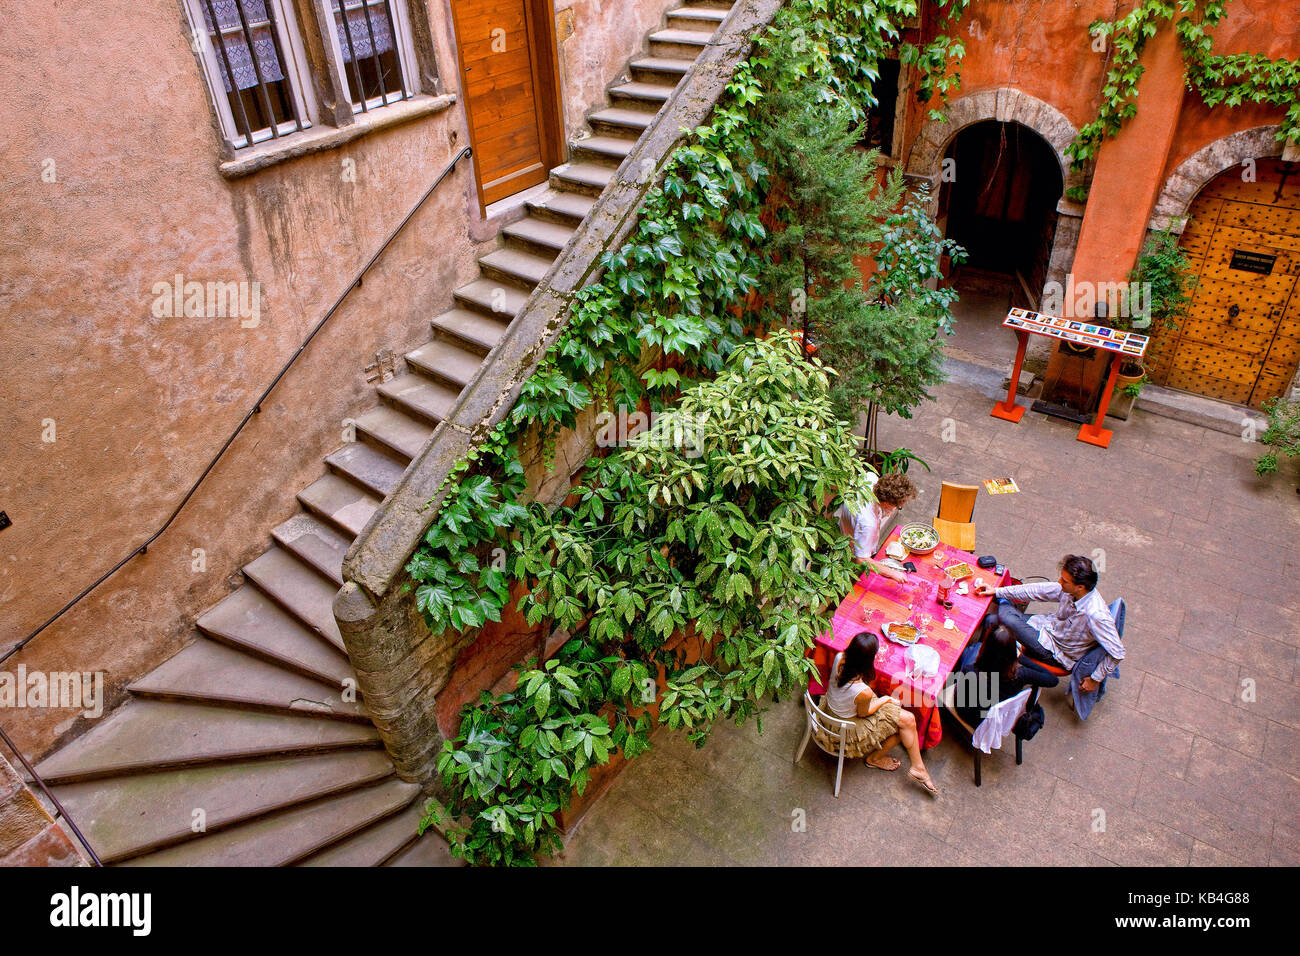 Courtyard in the old Lyon - Stock Image